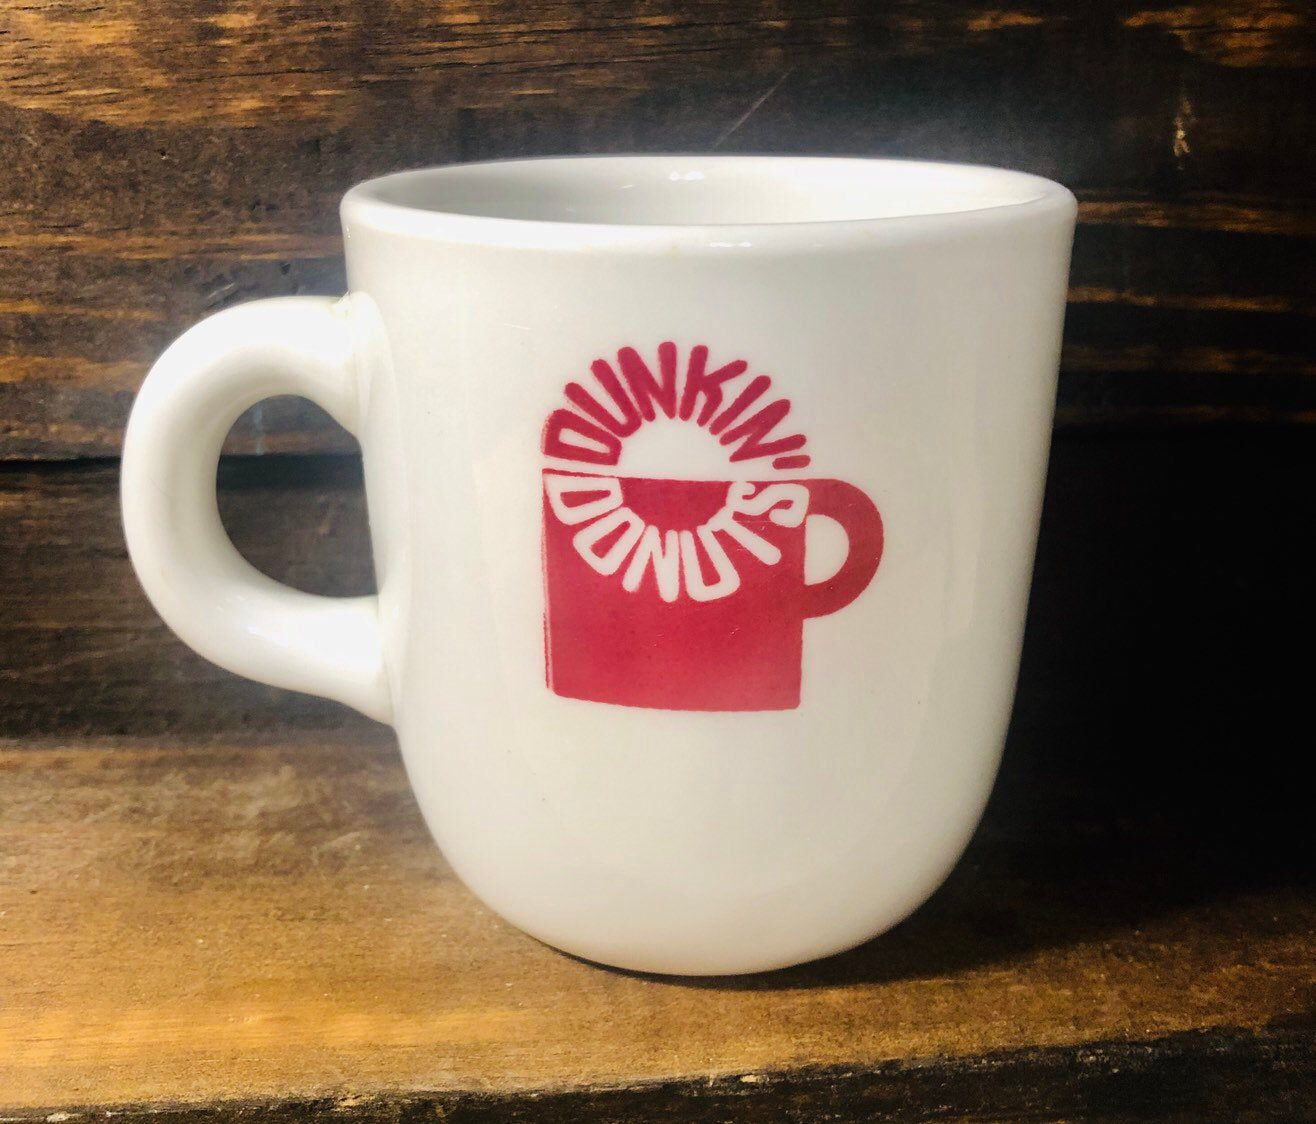 Extremely Rare 1965 Vintage Dunkin' Donuts Milk Glass